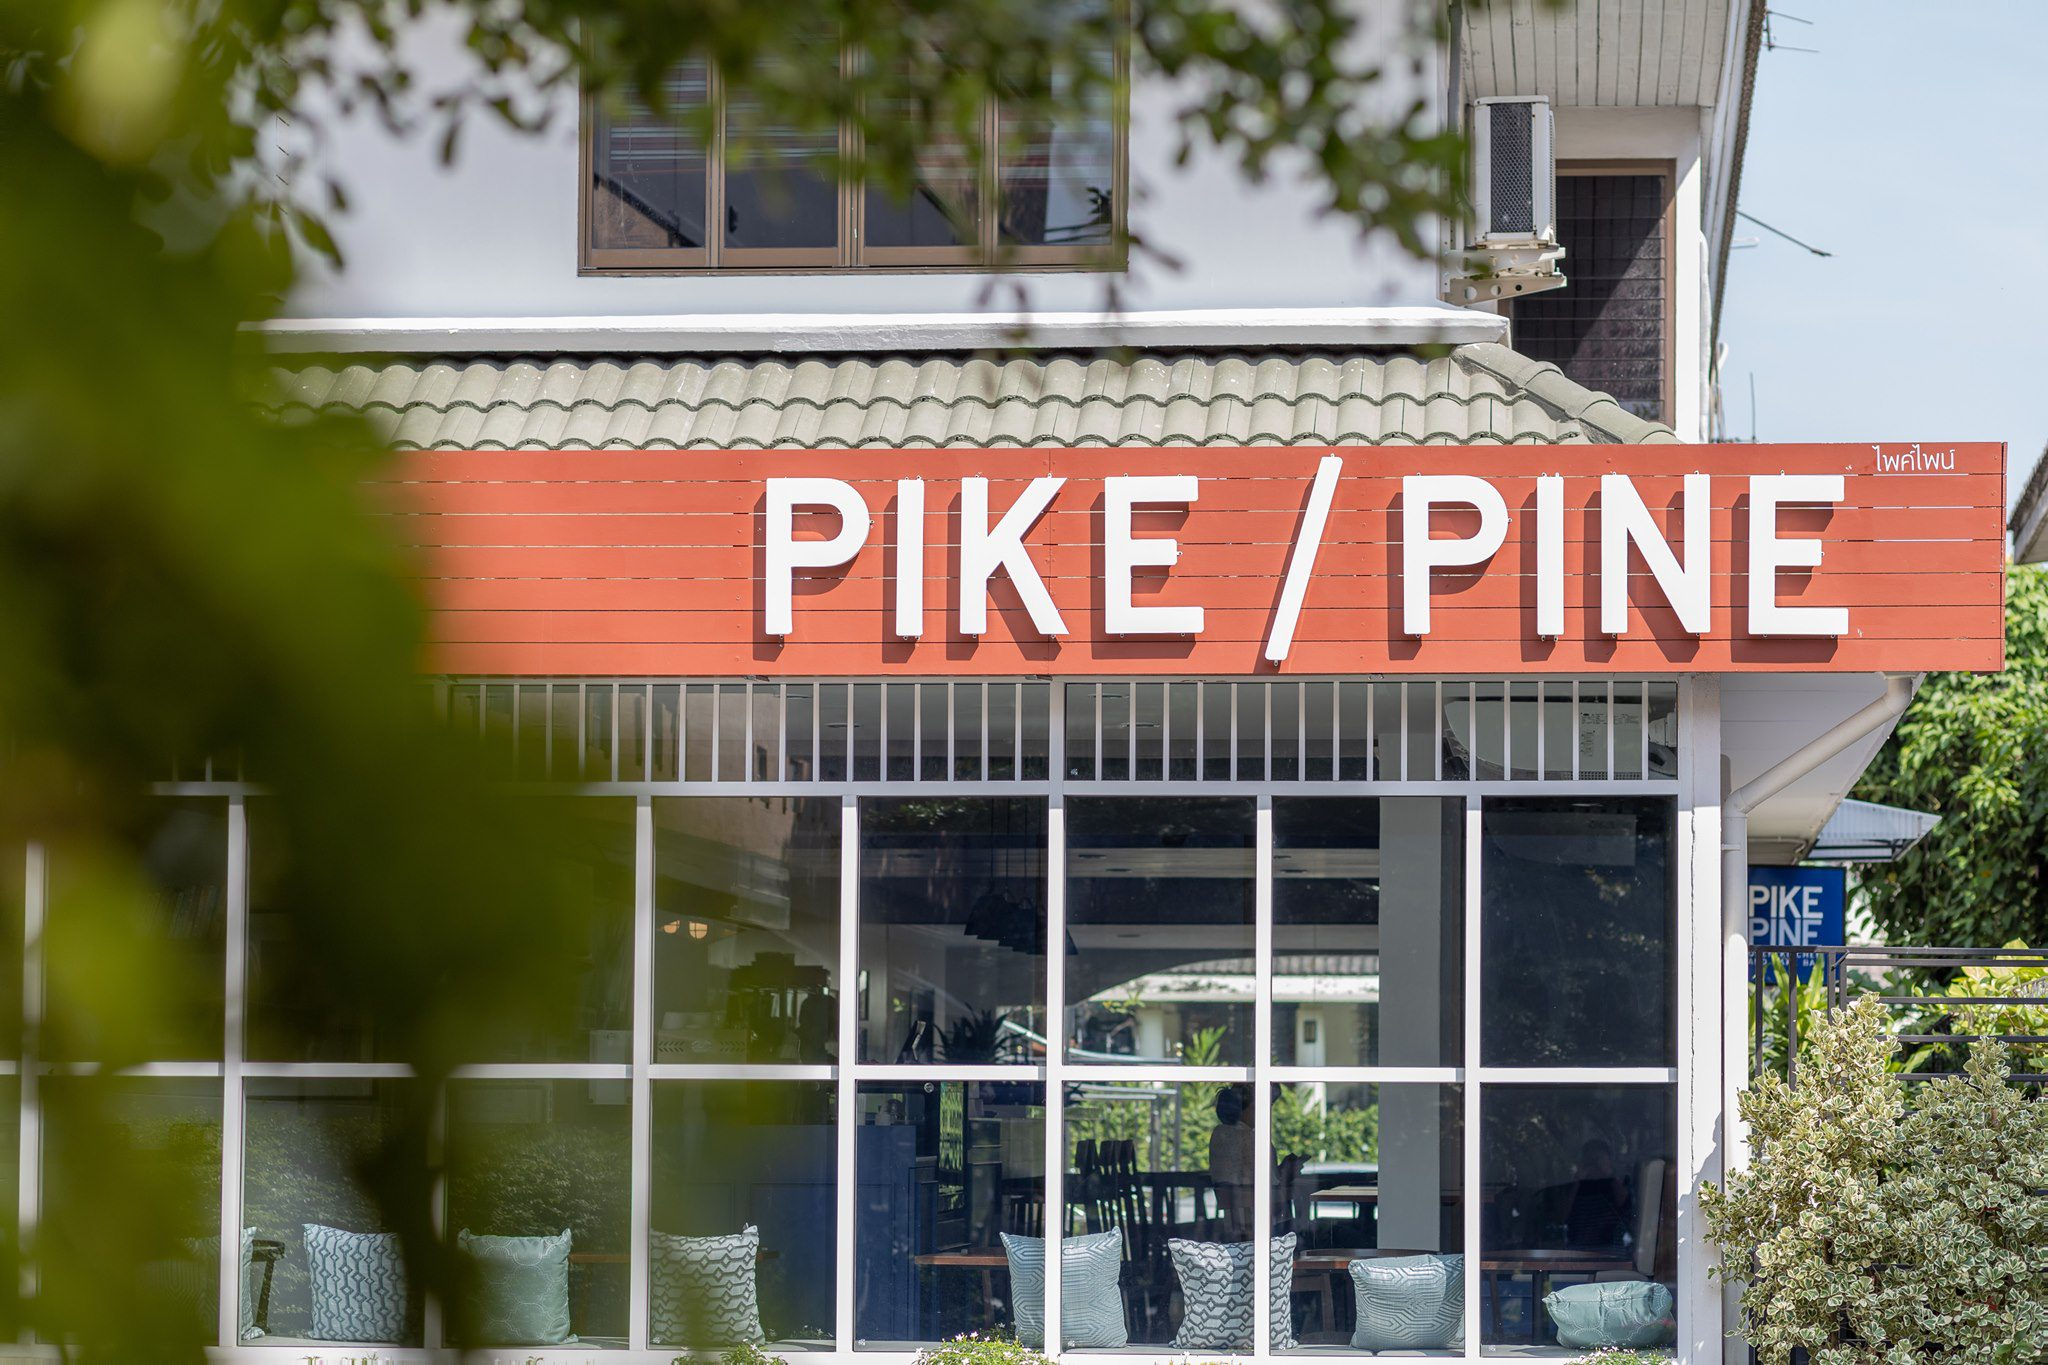 The next time you find yourself in Bangkok, stop by Pike/Pine